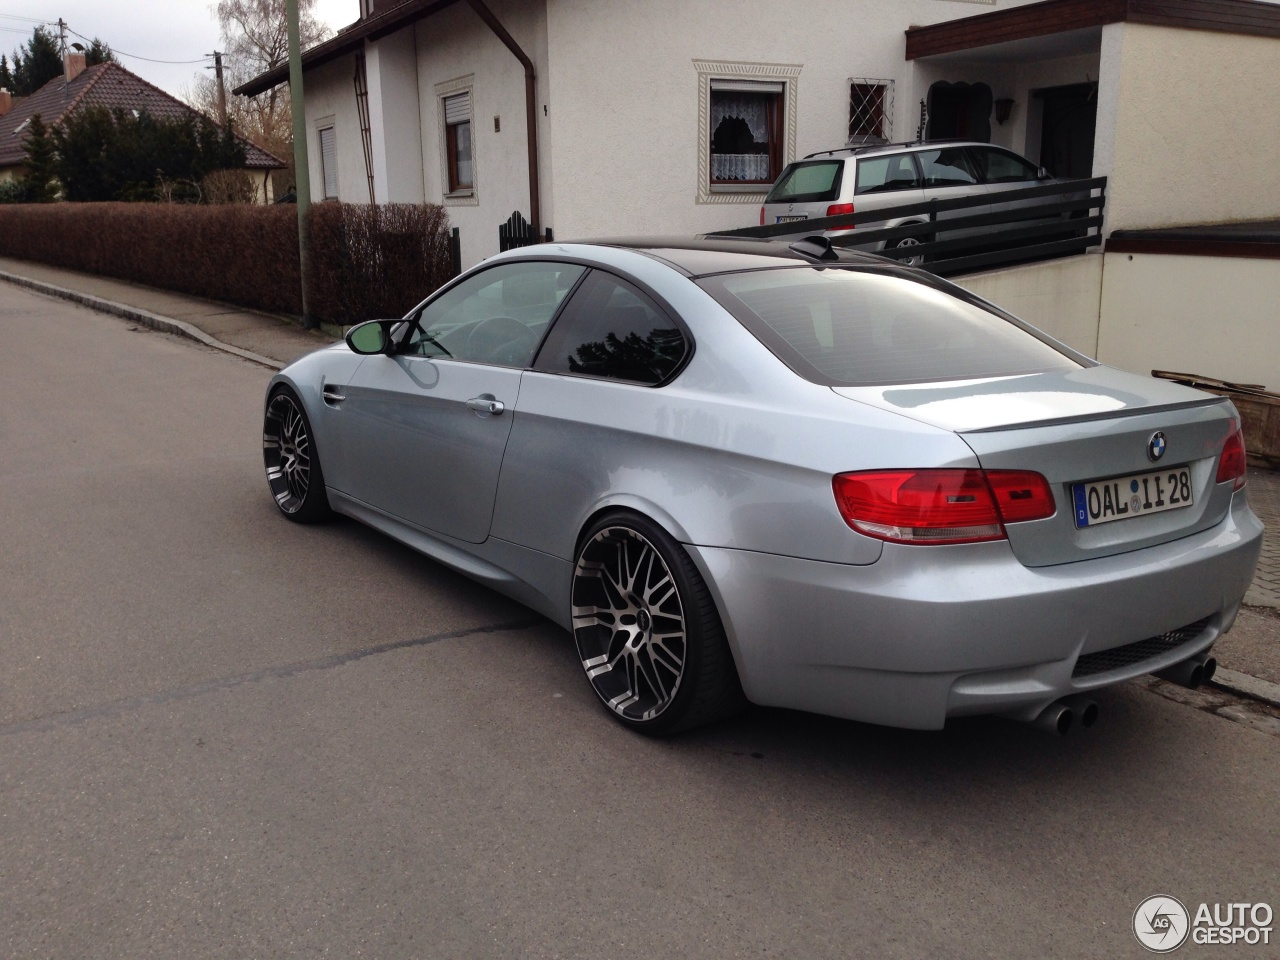 bmw m3 e92 coup 8 february 2014 autogespot. Black Bedroom Furniture Sets. Home Design Ideas